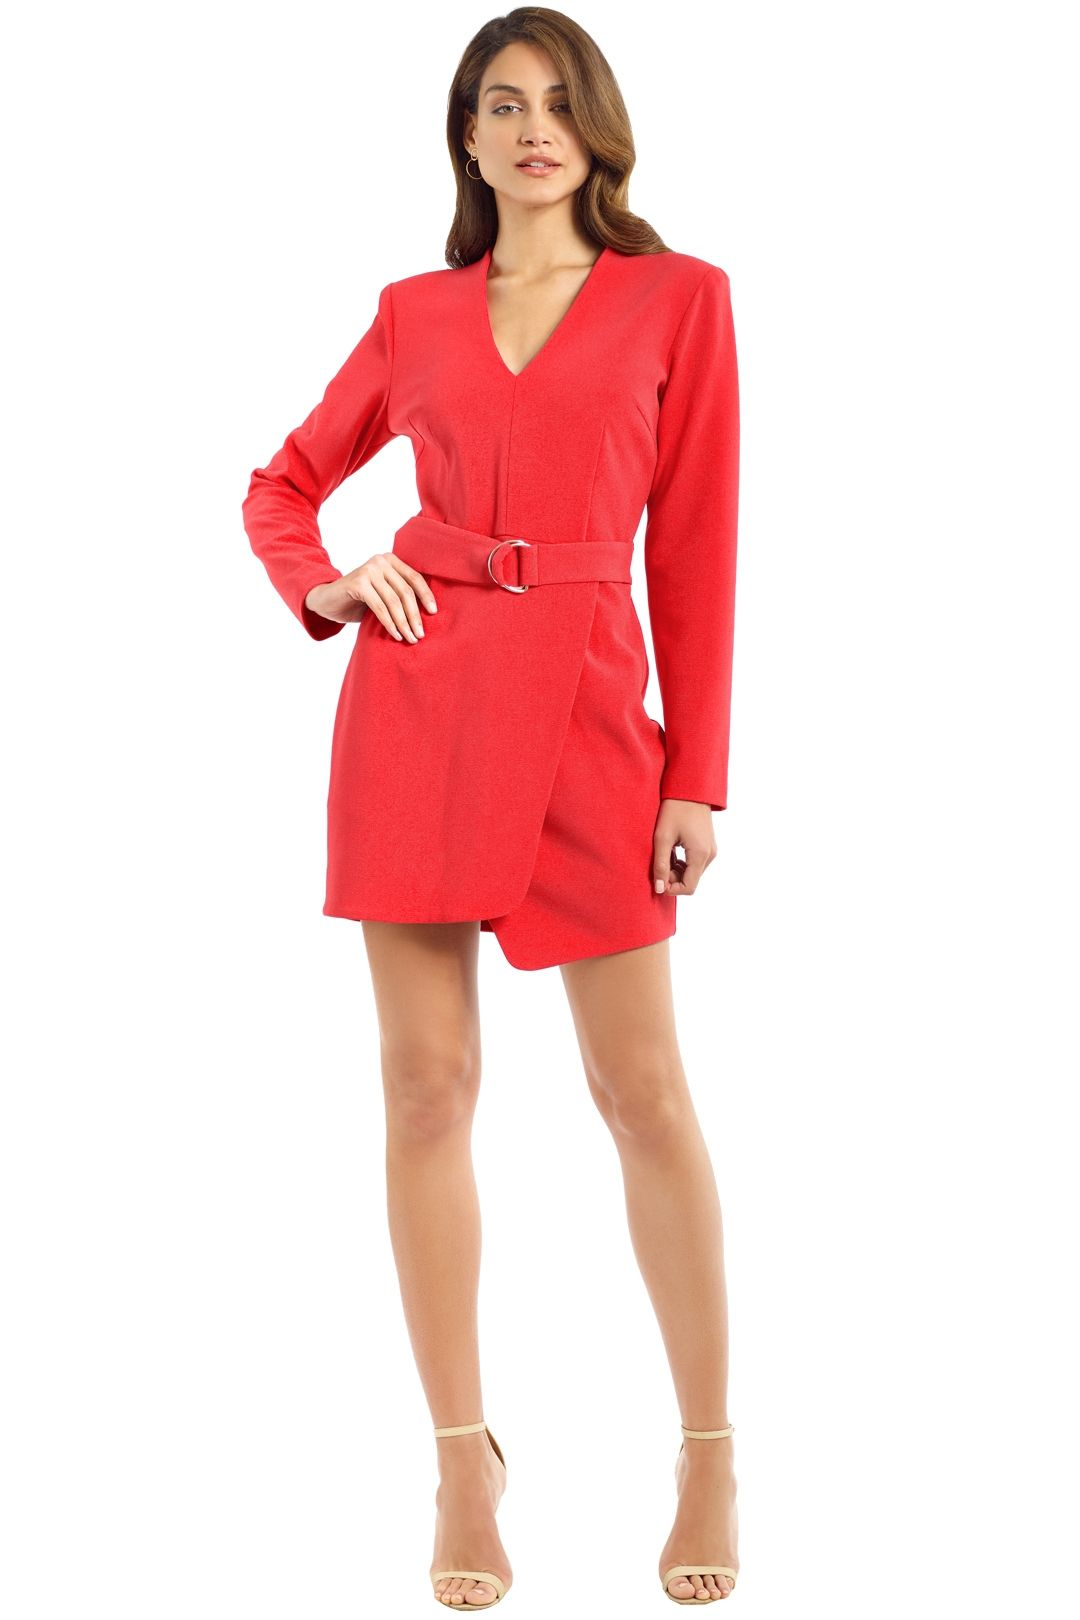 Rebecca Vallance - Domingo V LS Mini Dress - Calyspo - Front